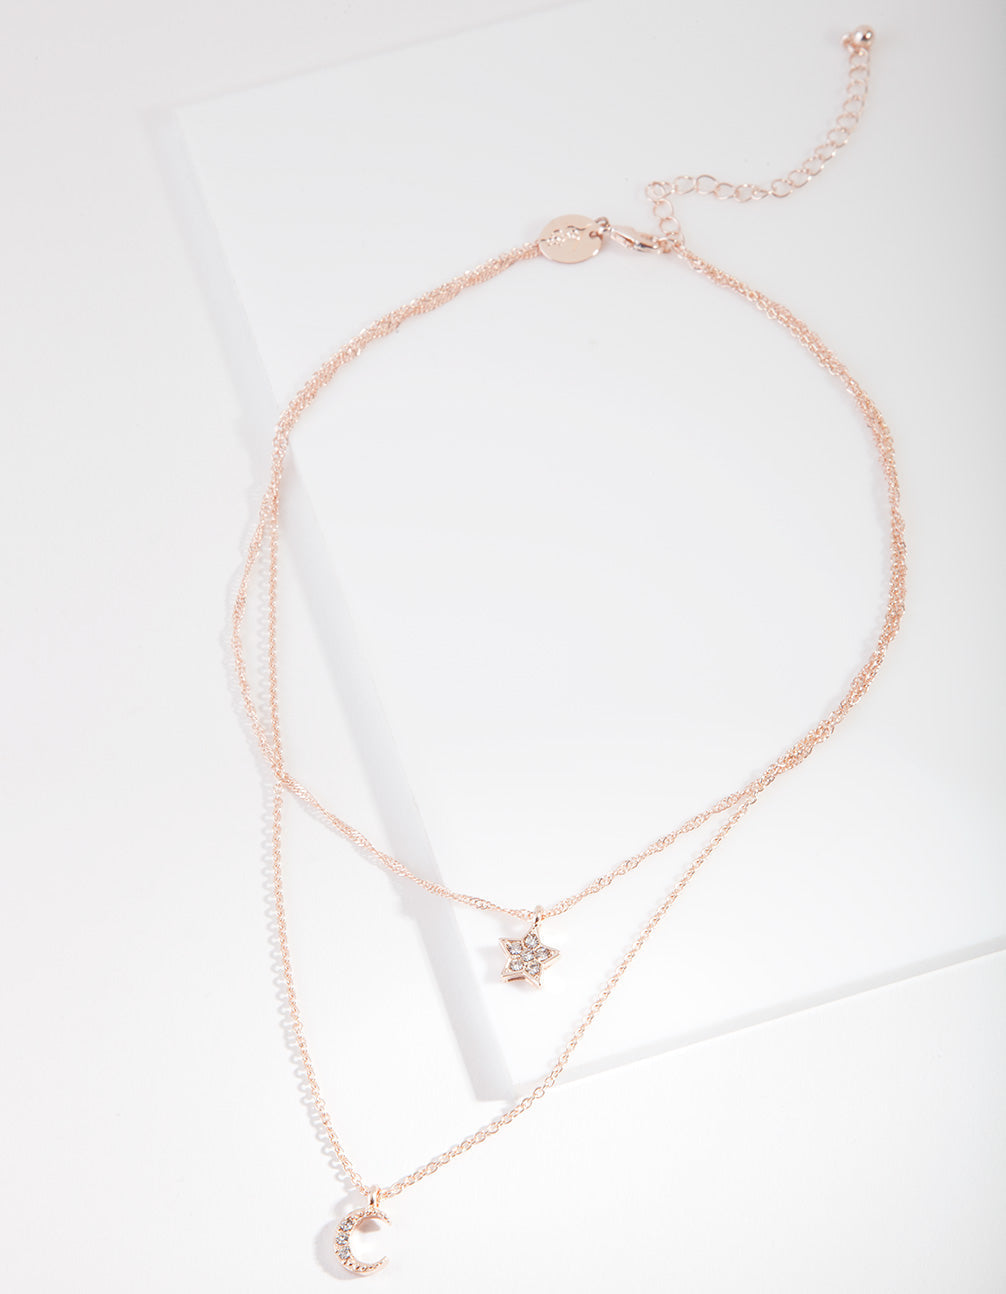 Rose Gold Starry Night Charm Necklace